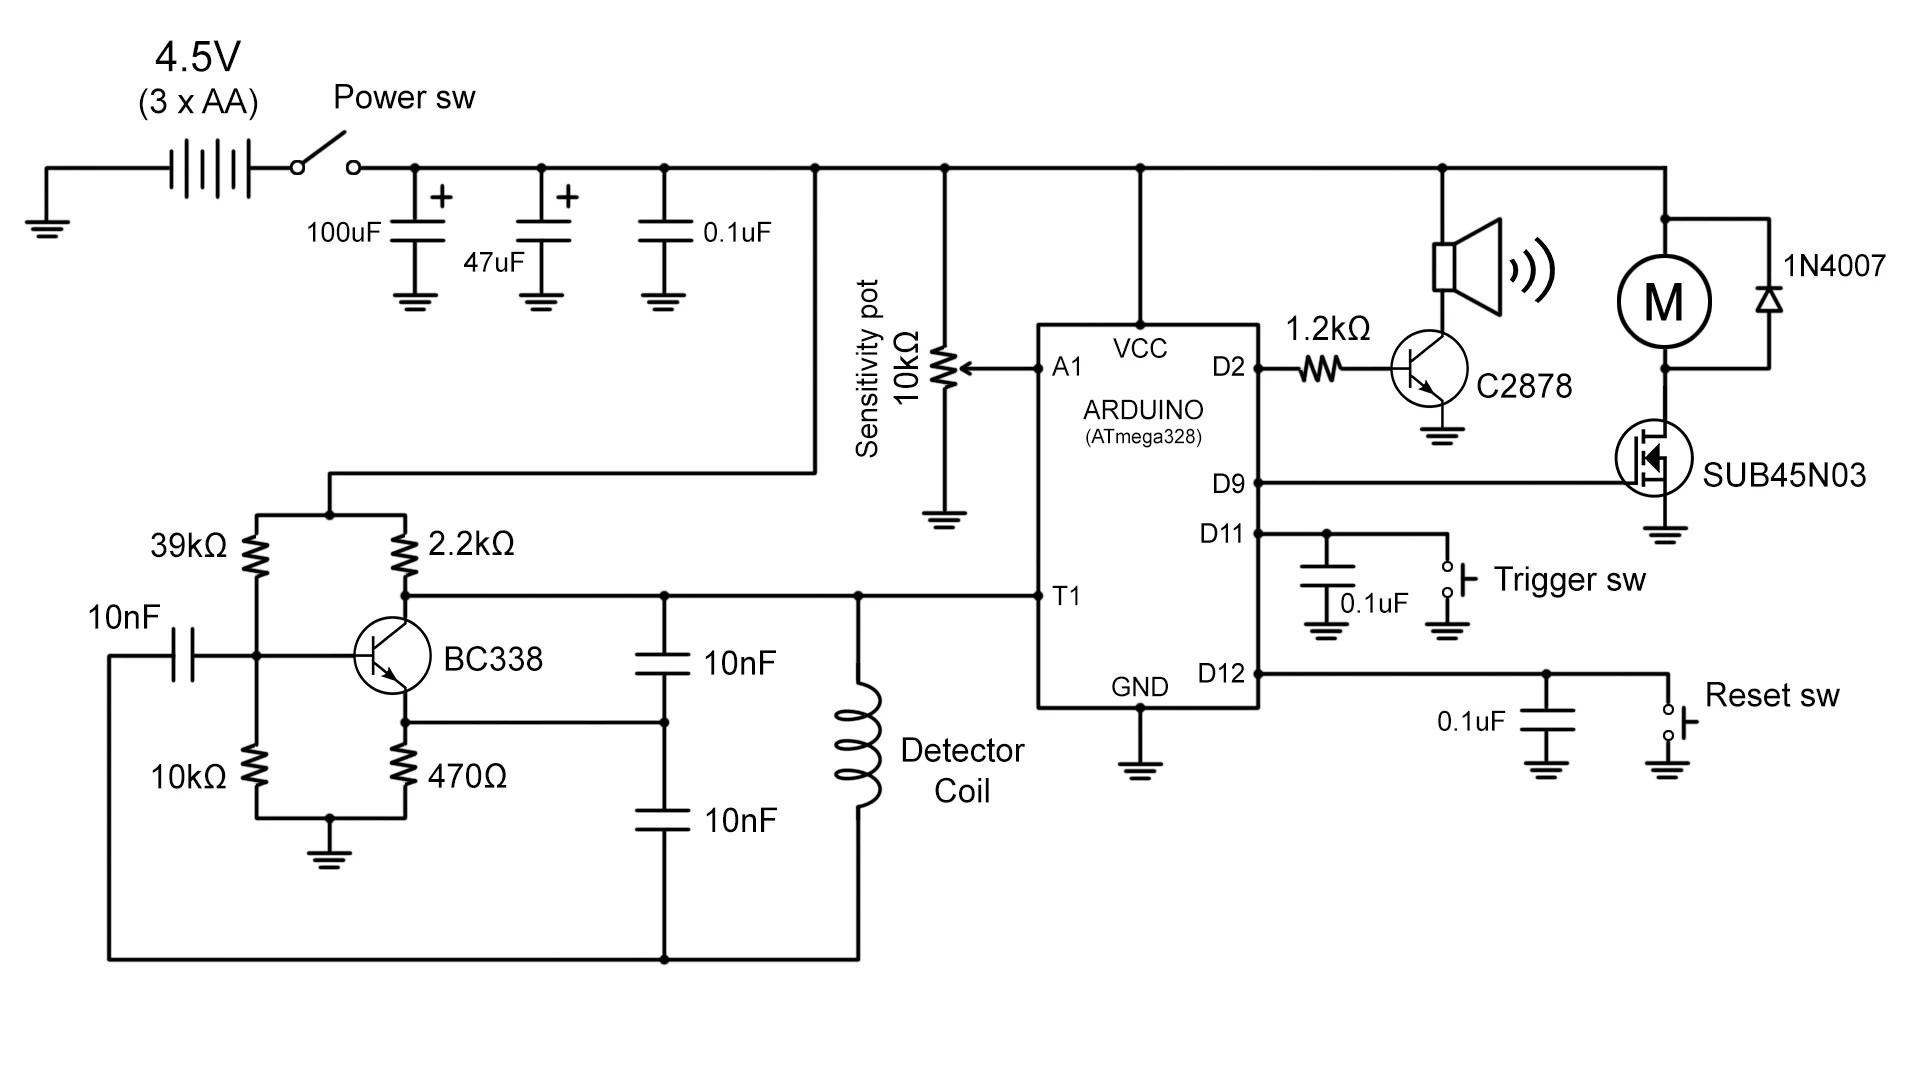 gold detector circuit diagram 1964 chevy truck color wiring build your own metal with an arduino